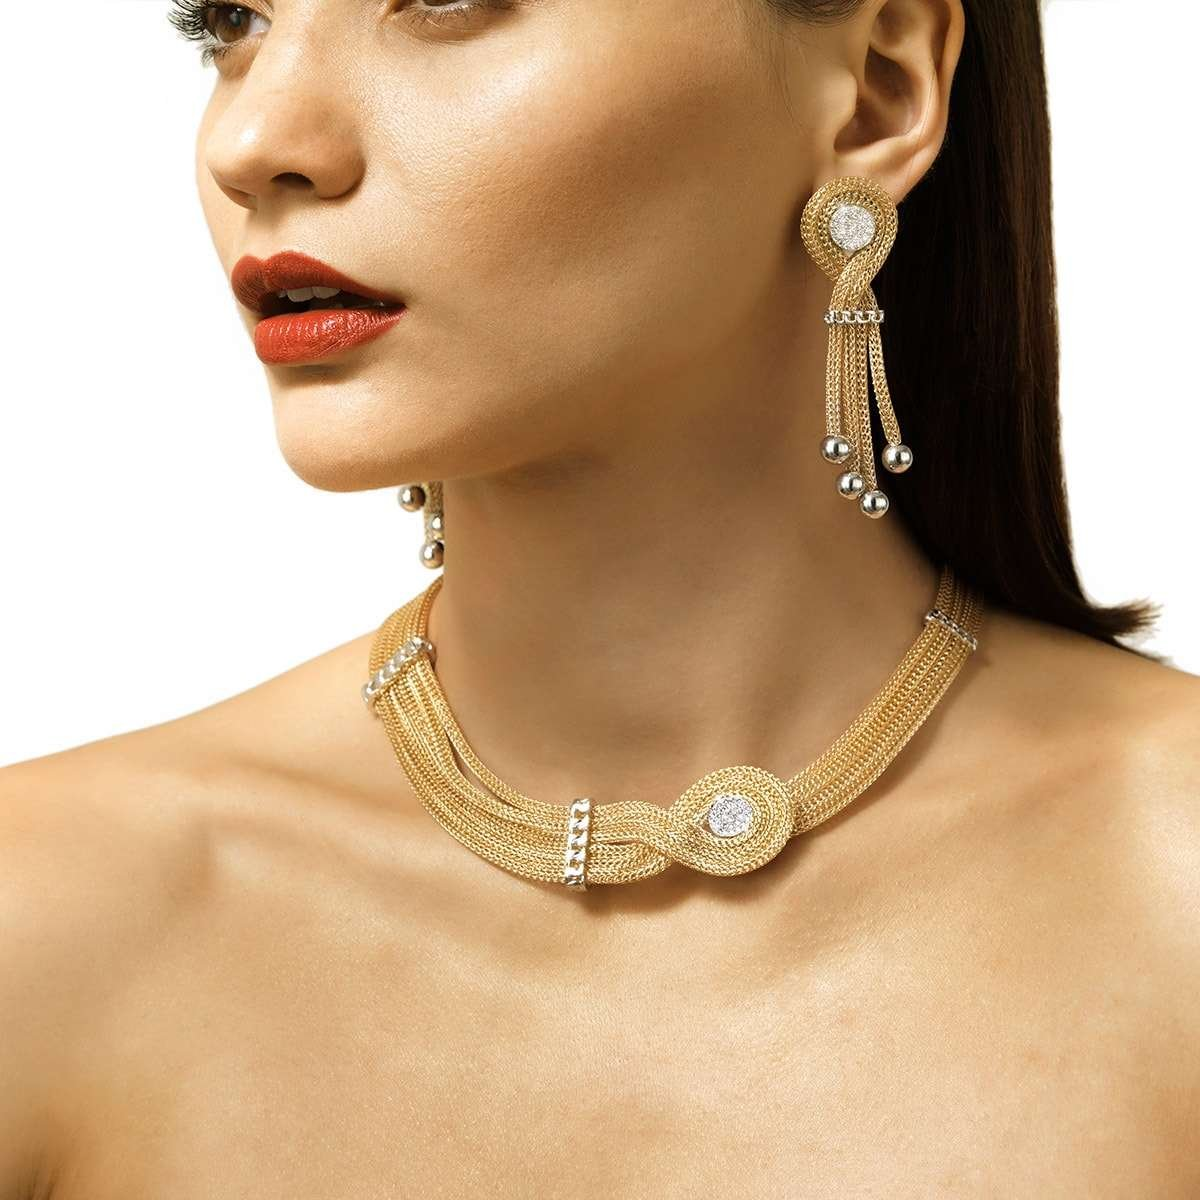 Sweet Ripples Necklace -  Franco Piane Designed By Franco Pianegonda